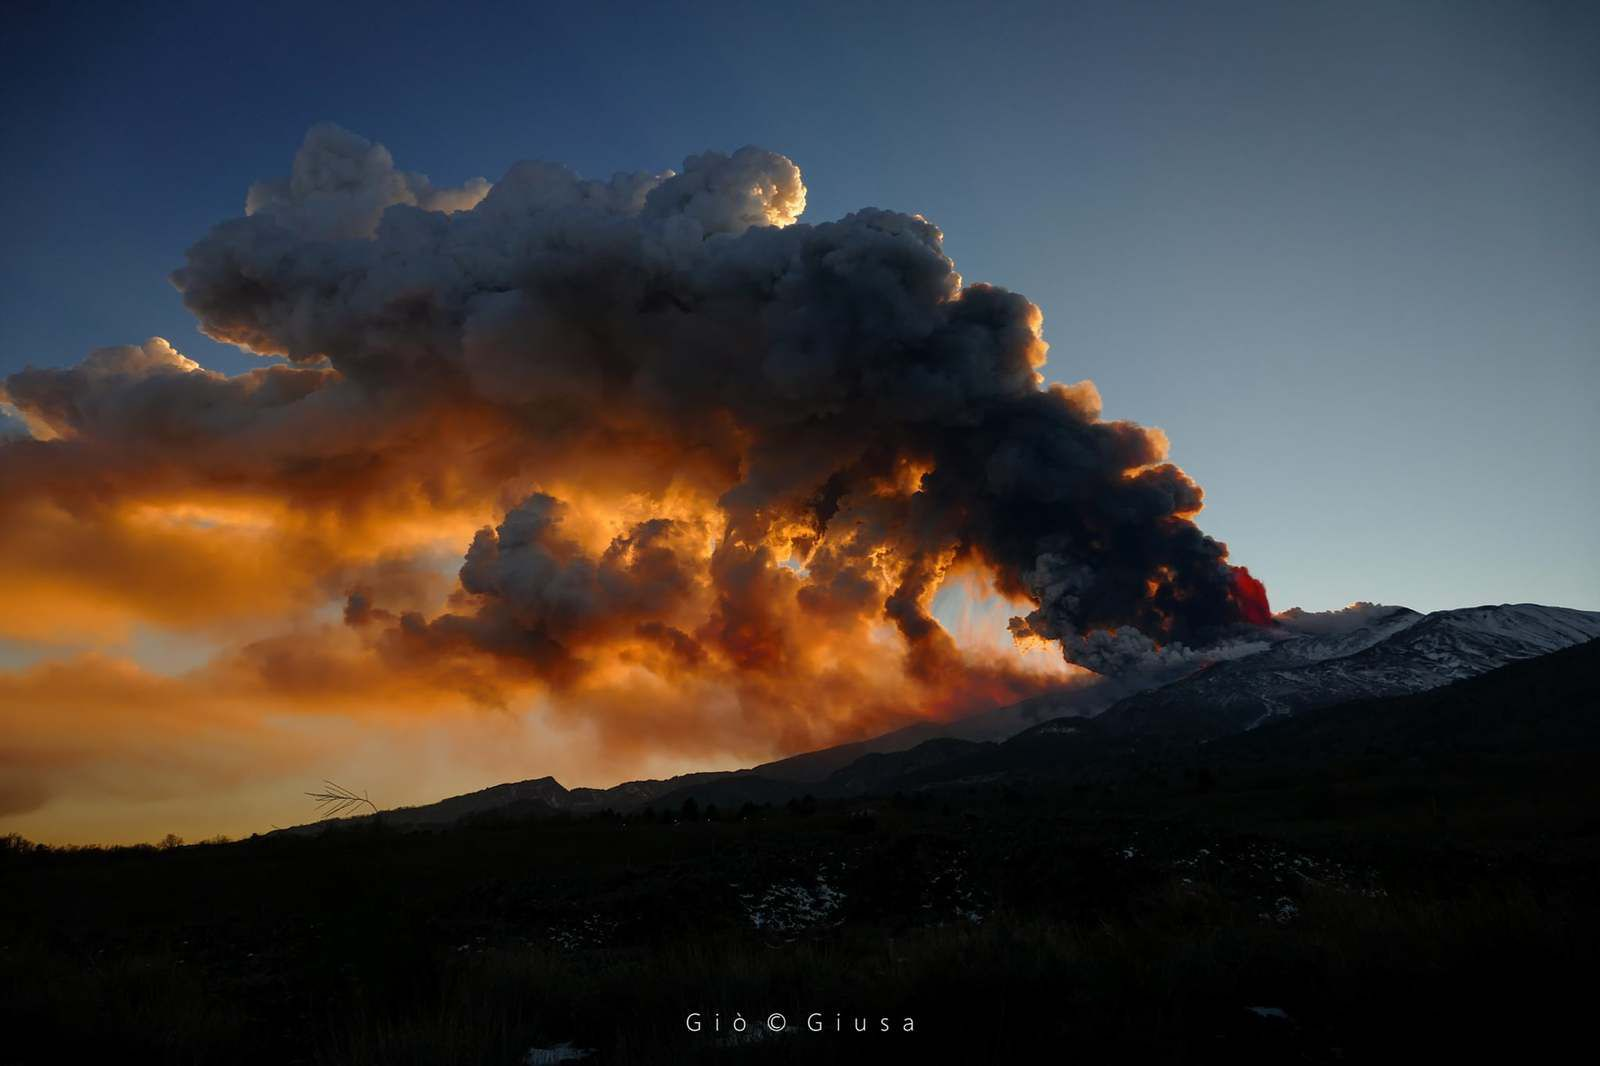 Etna - ash plume and lapilli on 02.16.2021 - photo Gio Giusa - click on the photos to see them in full screen.